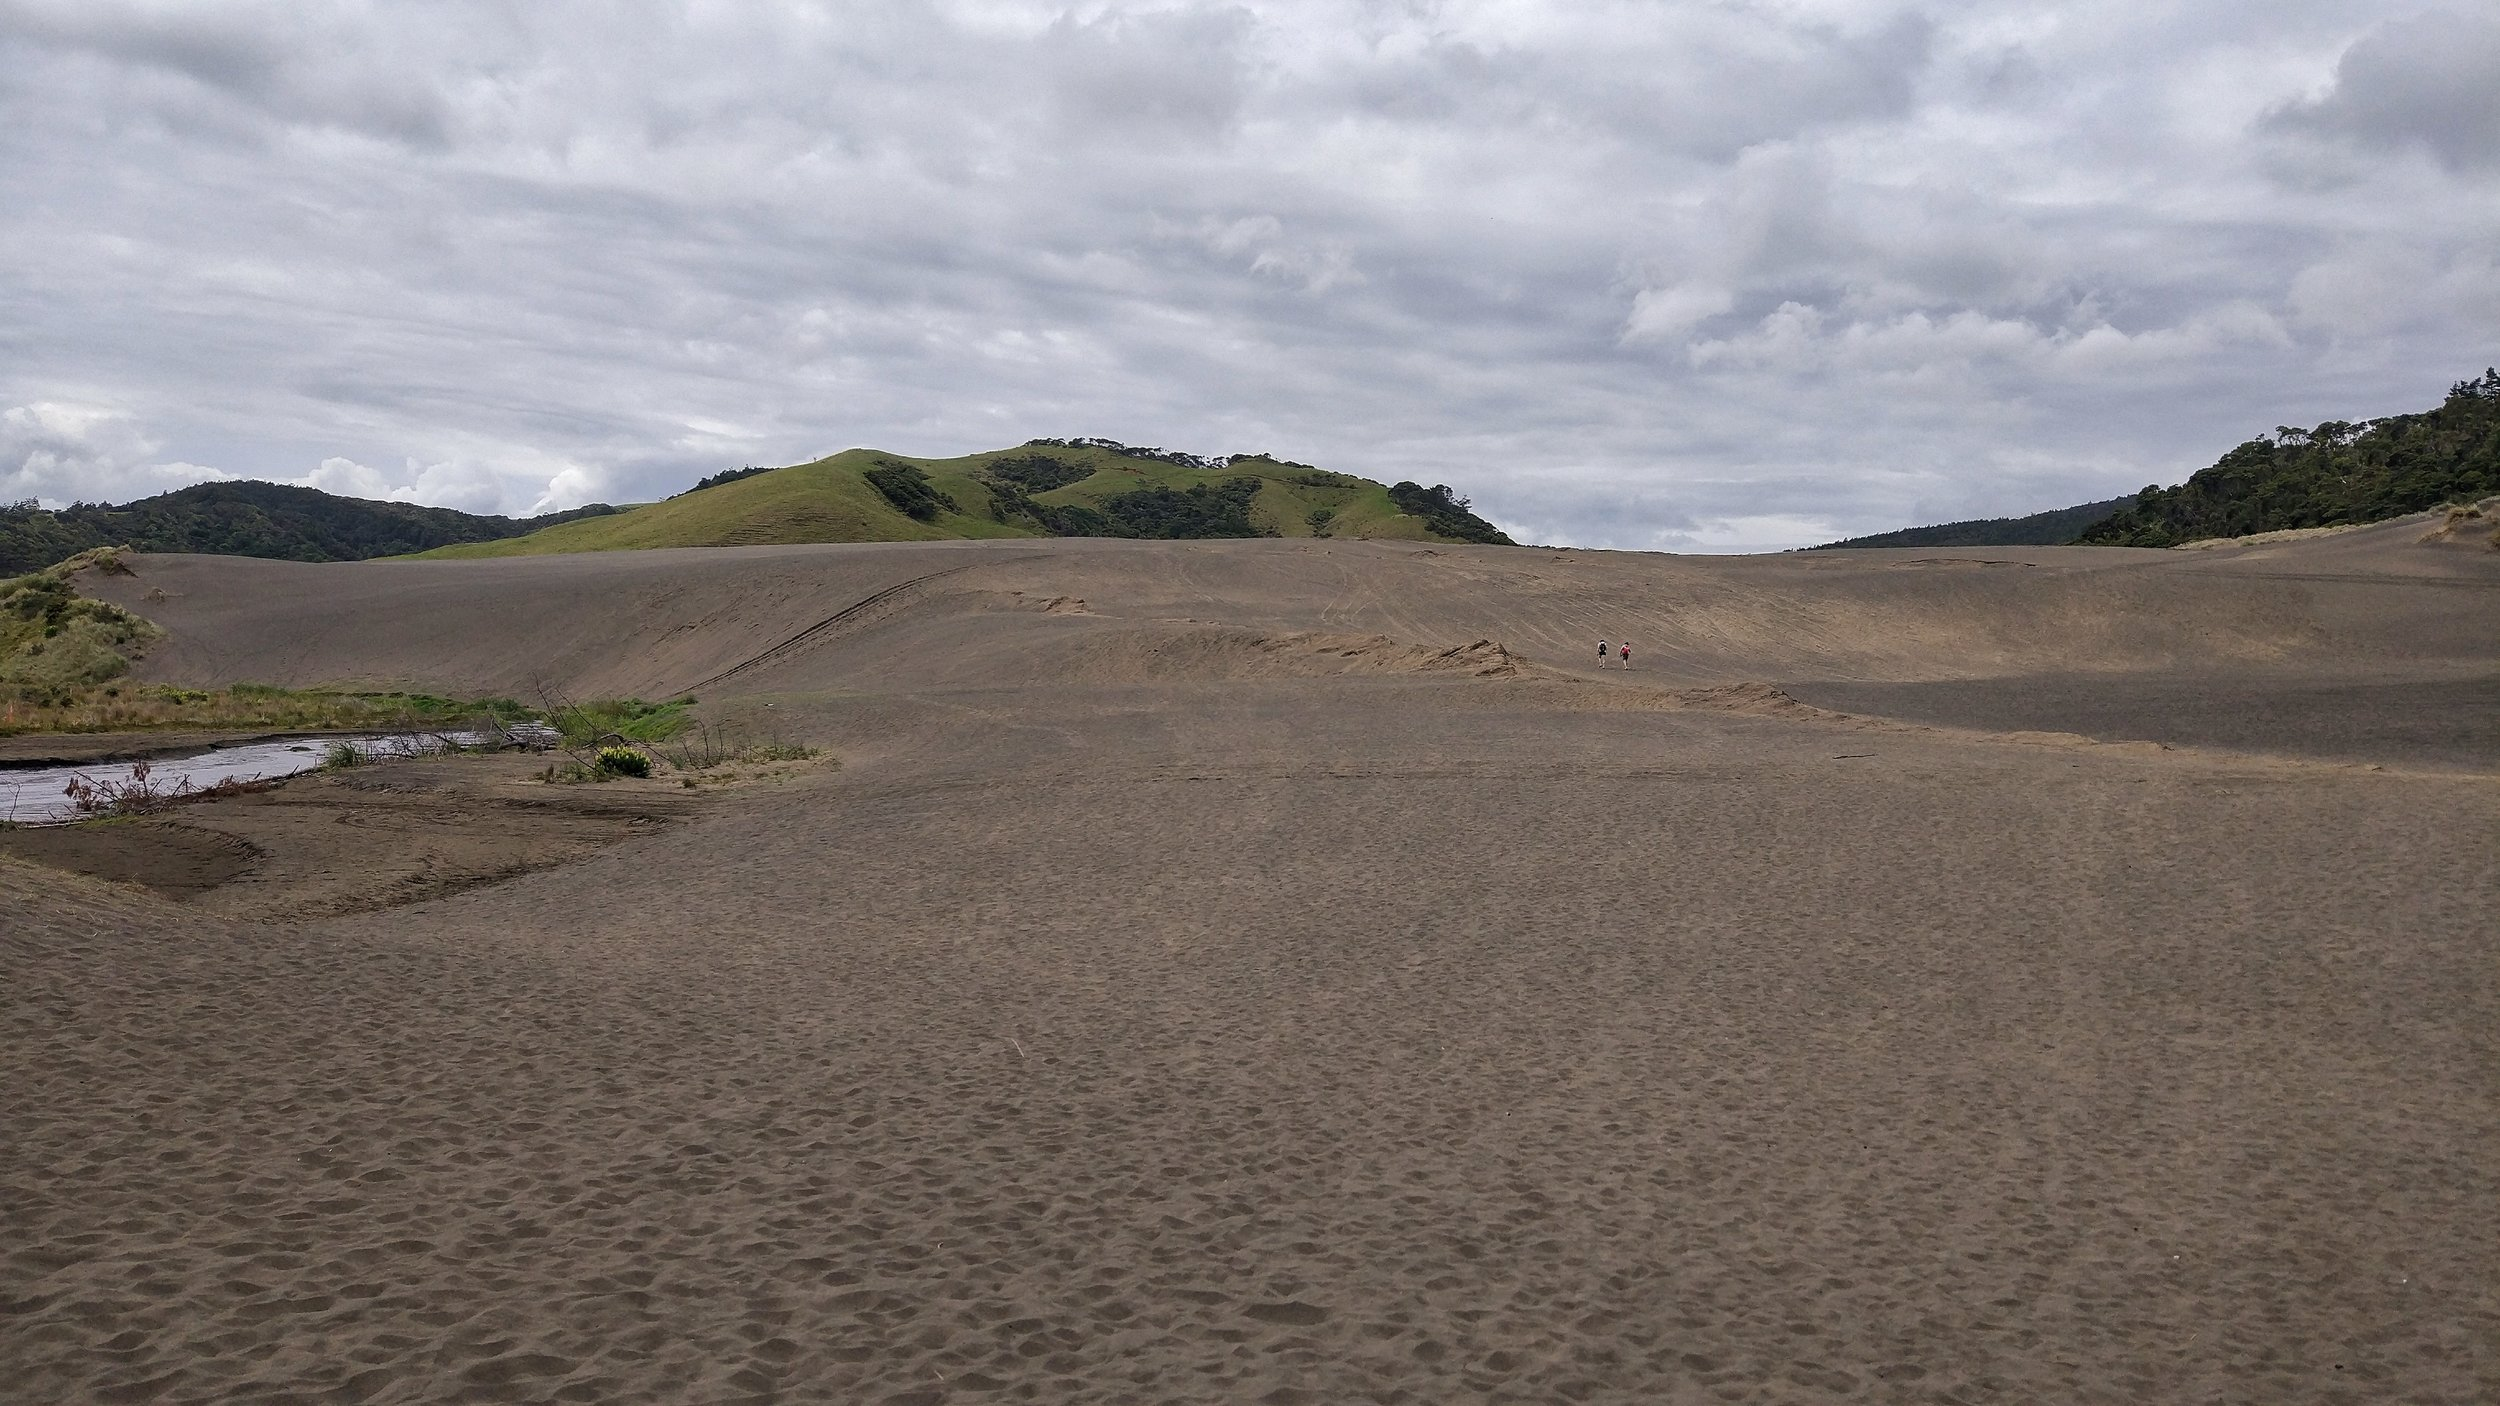 A landscape out of this world: Bethells beach sand dune